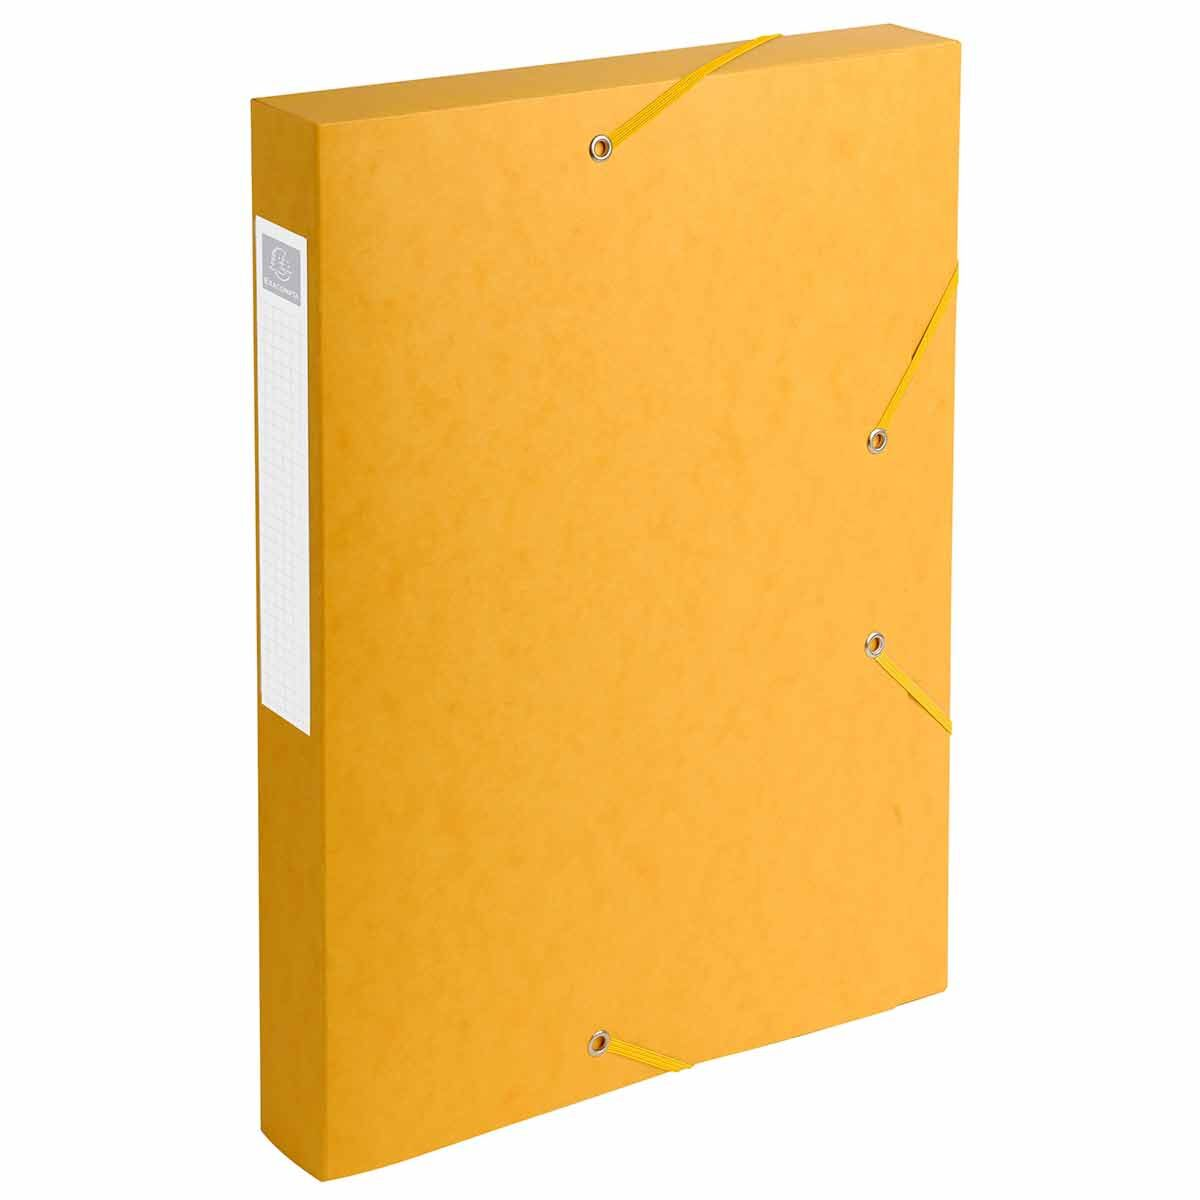 Exacompta Elasticated Box File Pressboard A4 40mm Pack of 10 Yellow